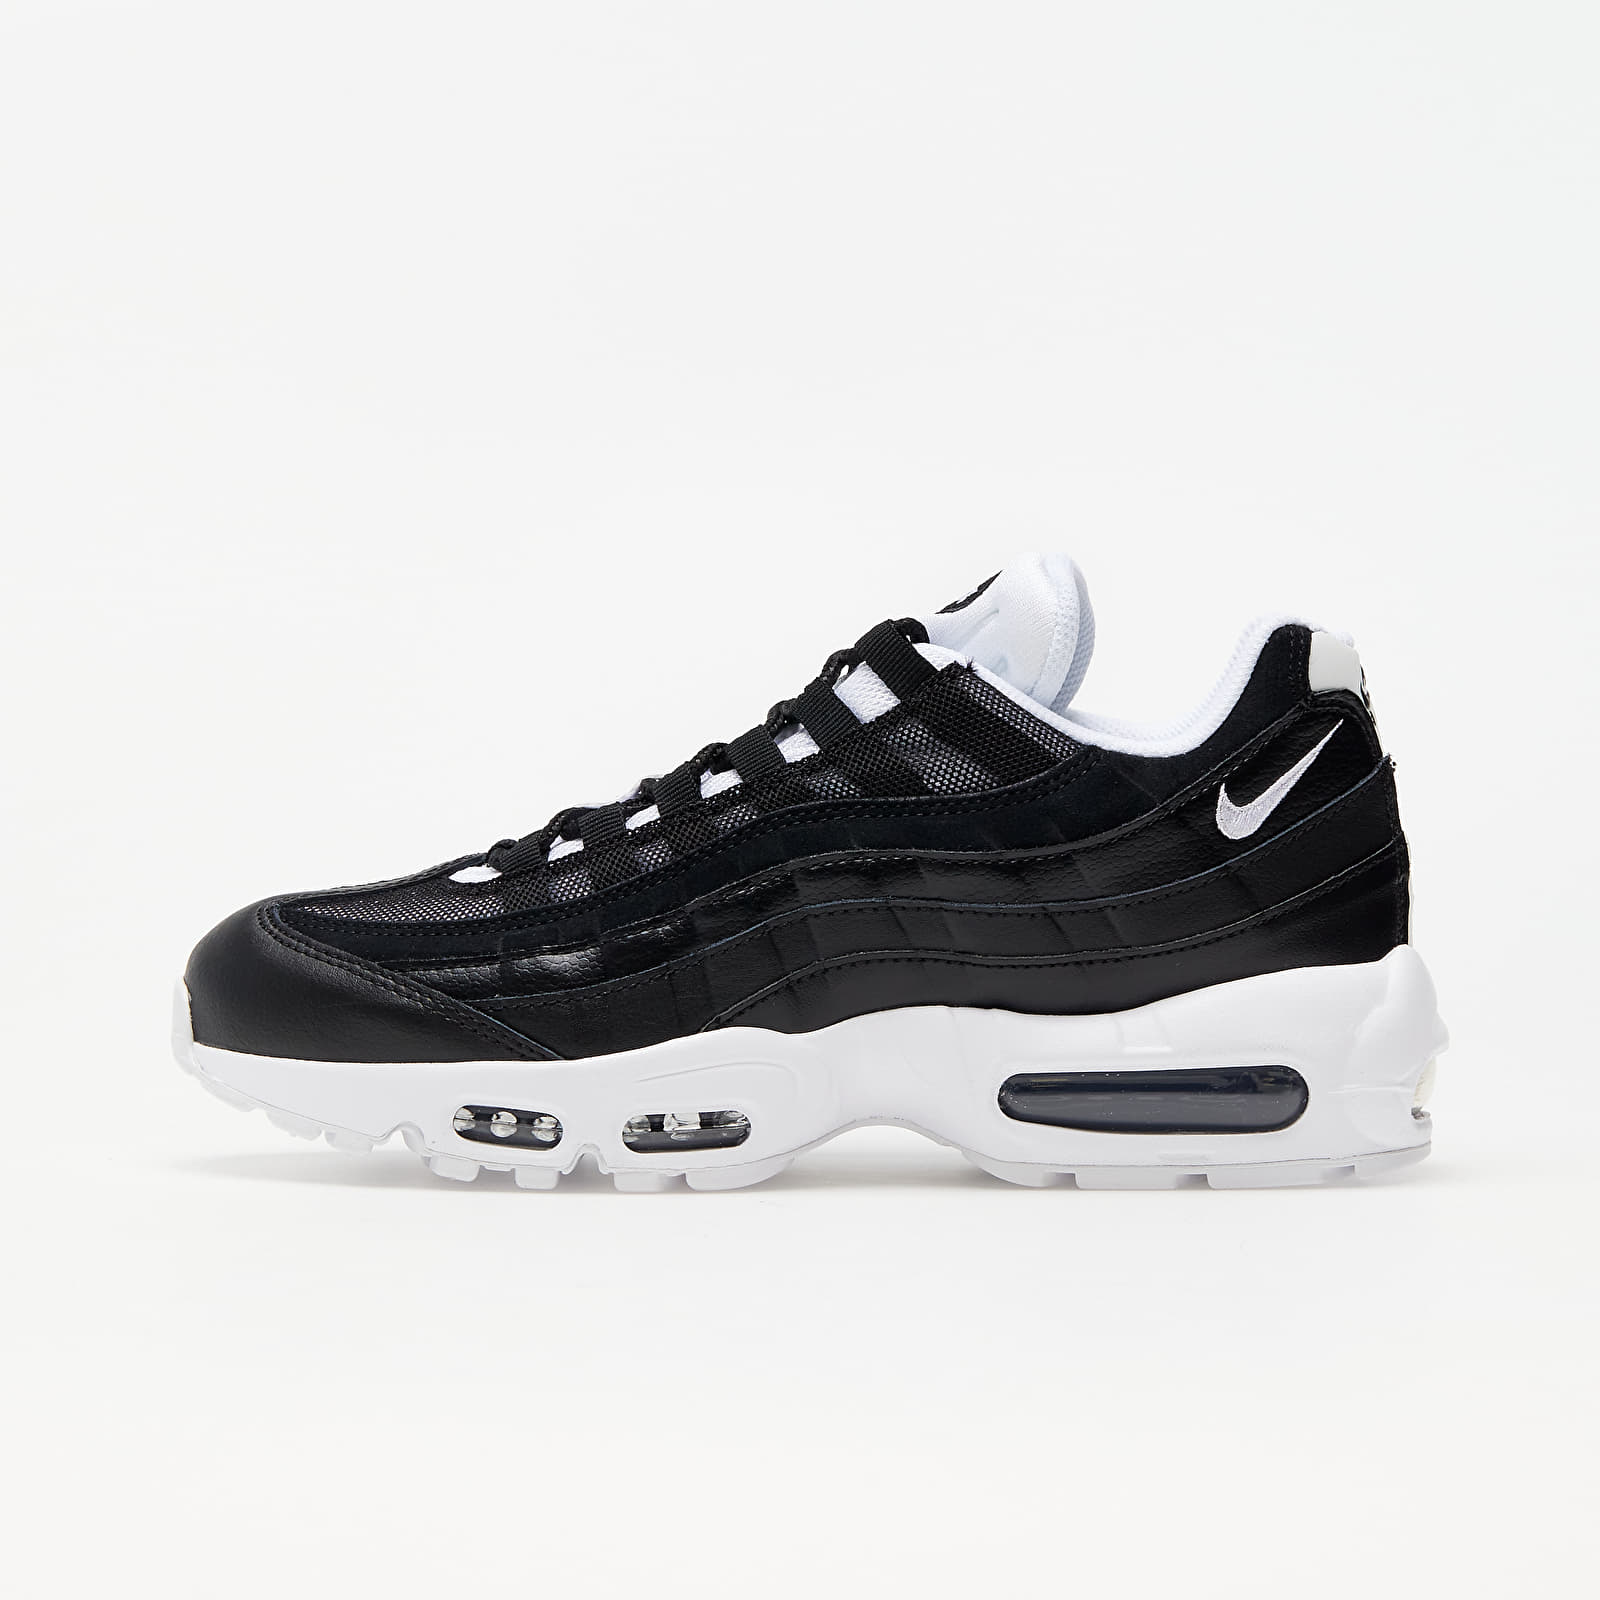 Nike Air Max 95 Essential Black/ White EUR 40.5